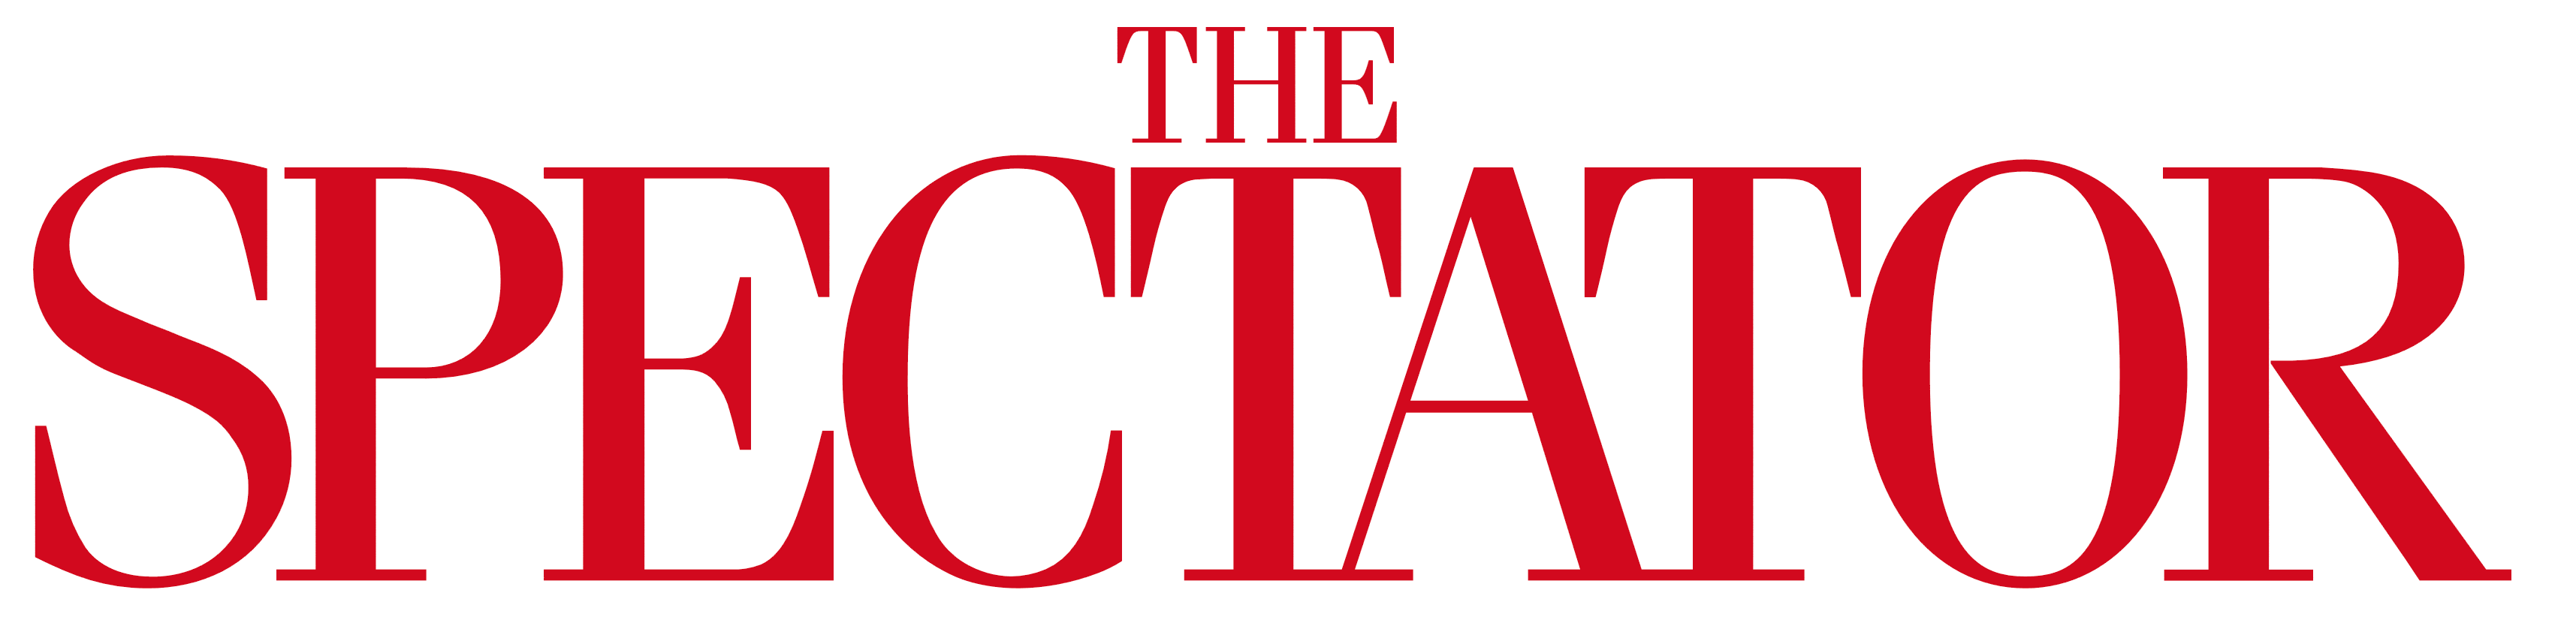 Image result for the spectator logo